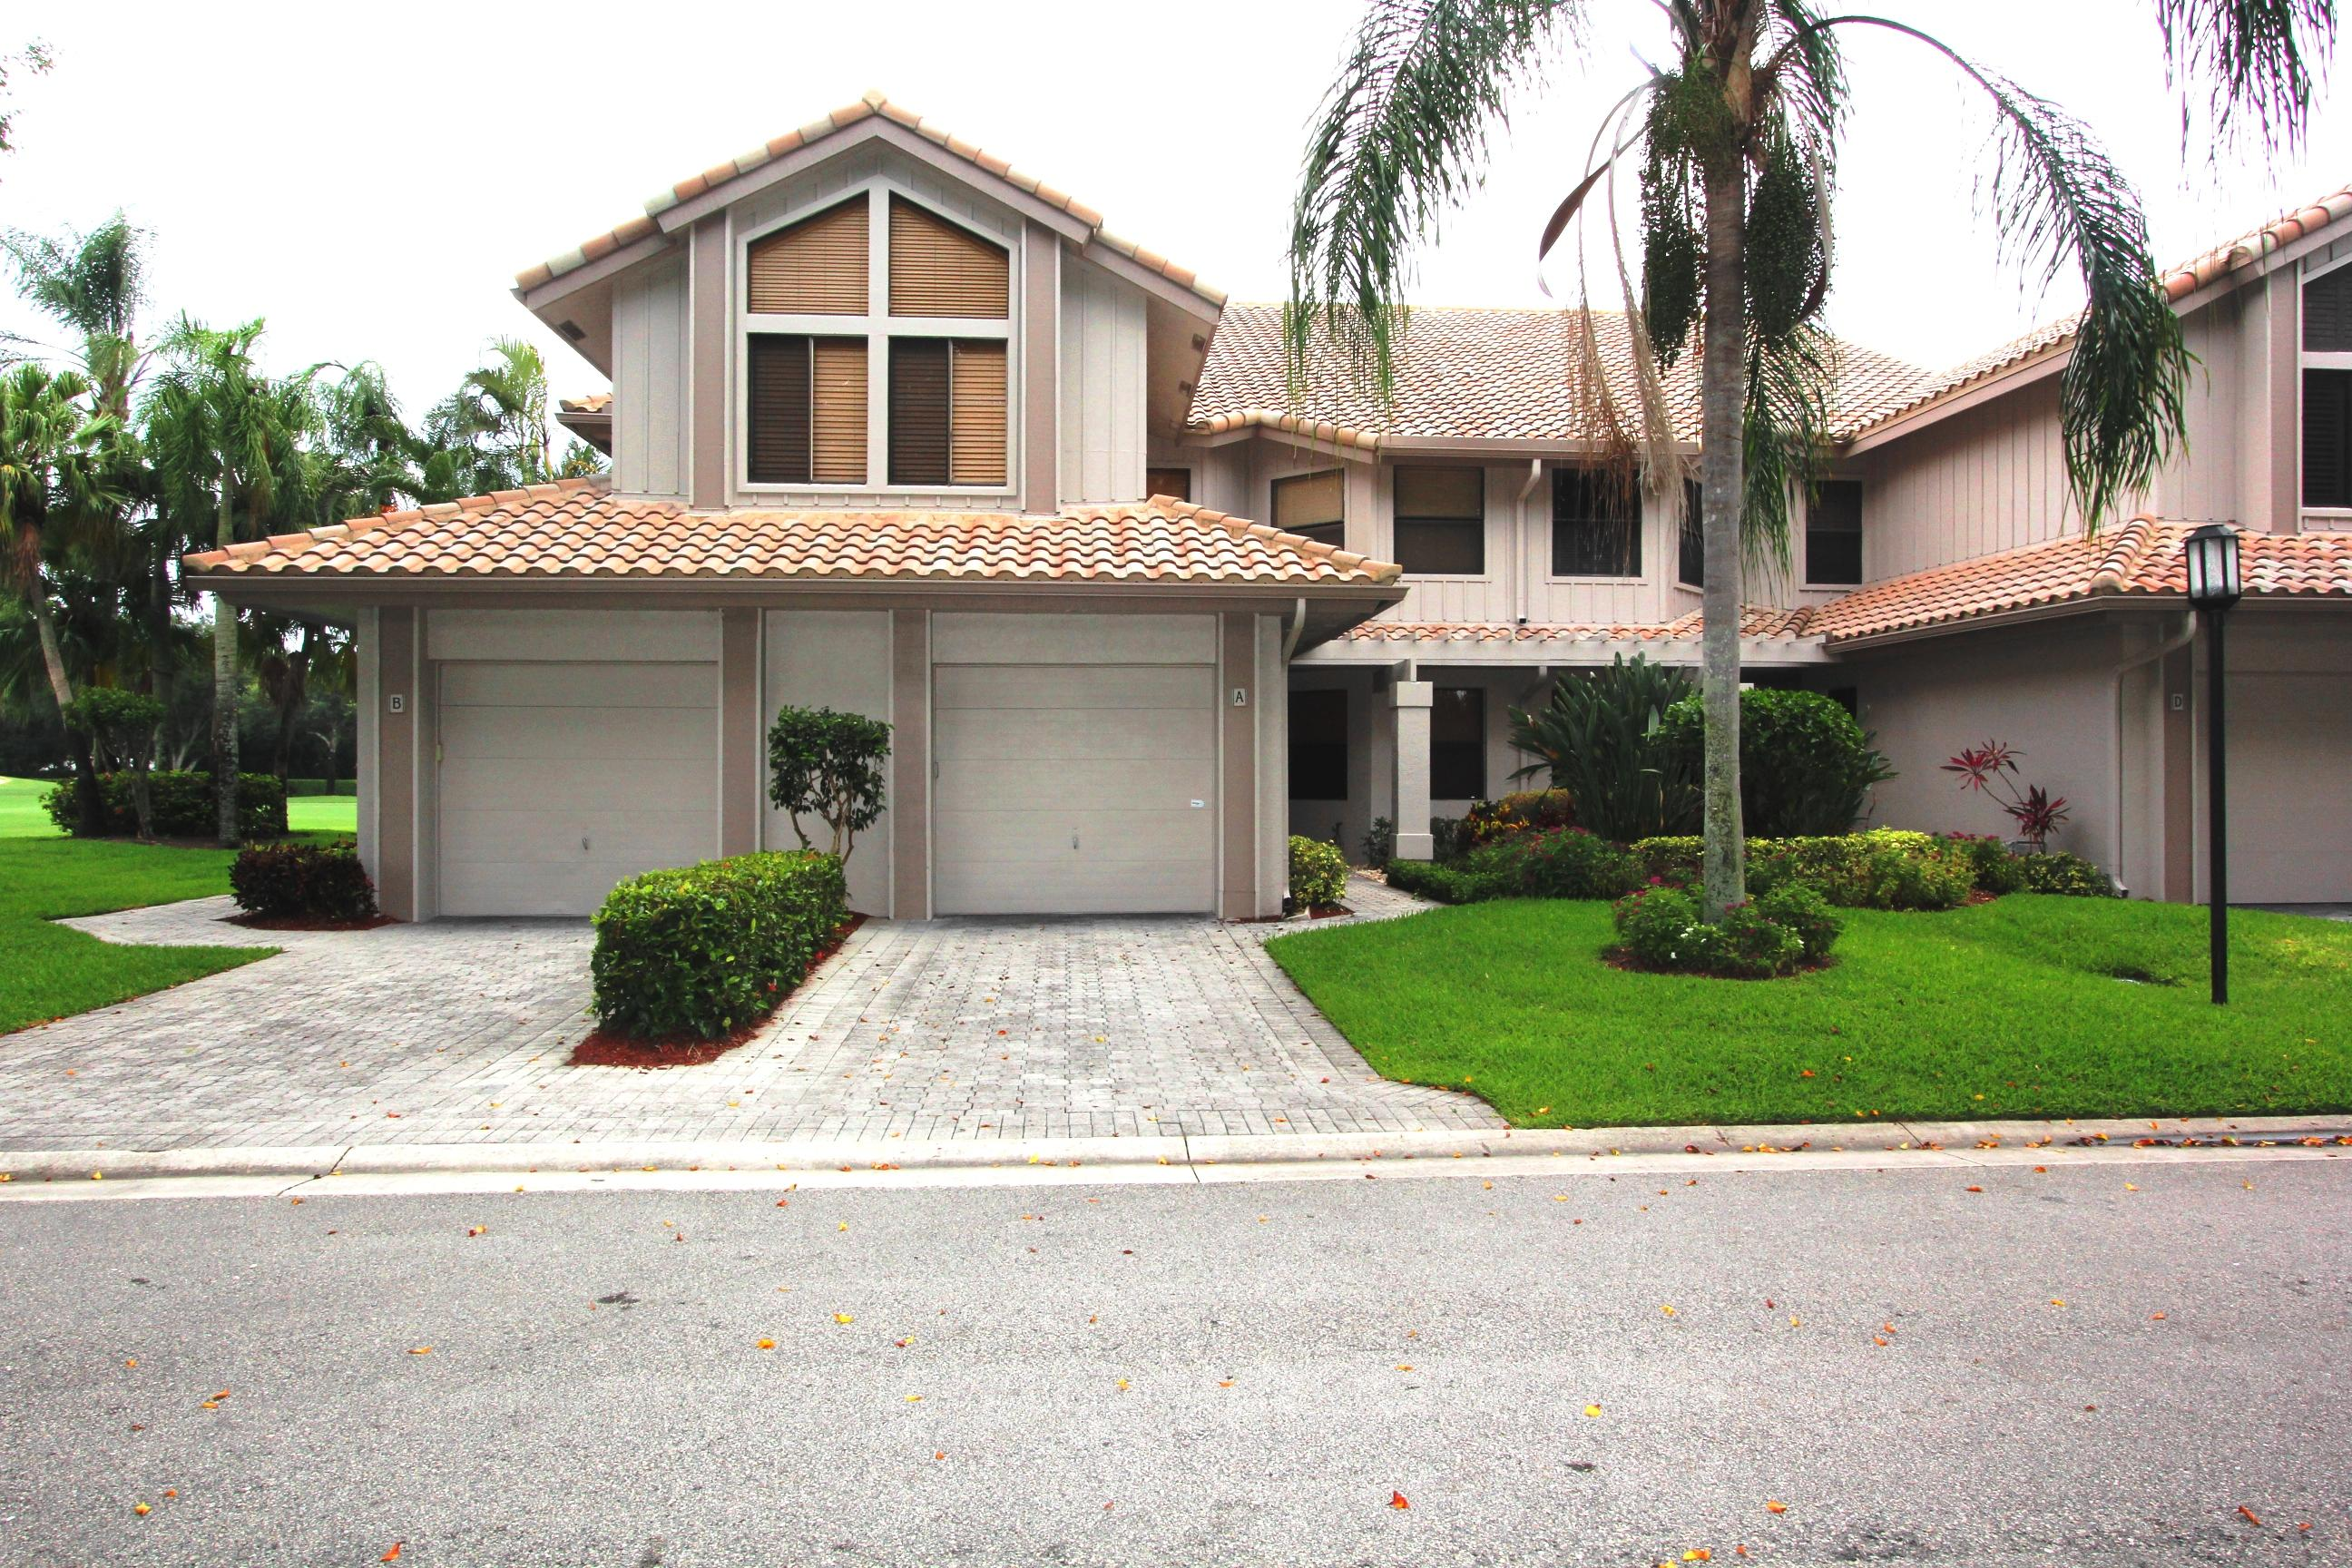 16856 Isle Of Palms Drive A  Delray Beach, FL 33484